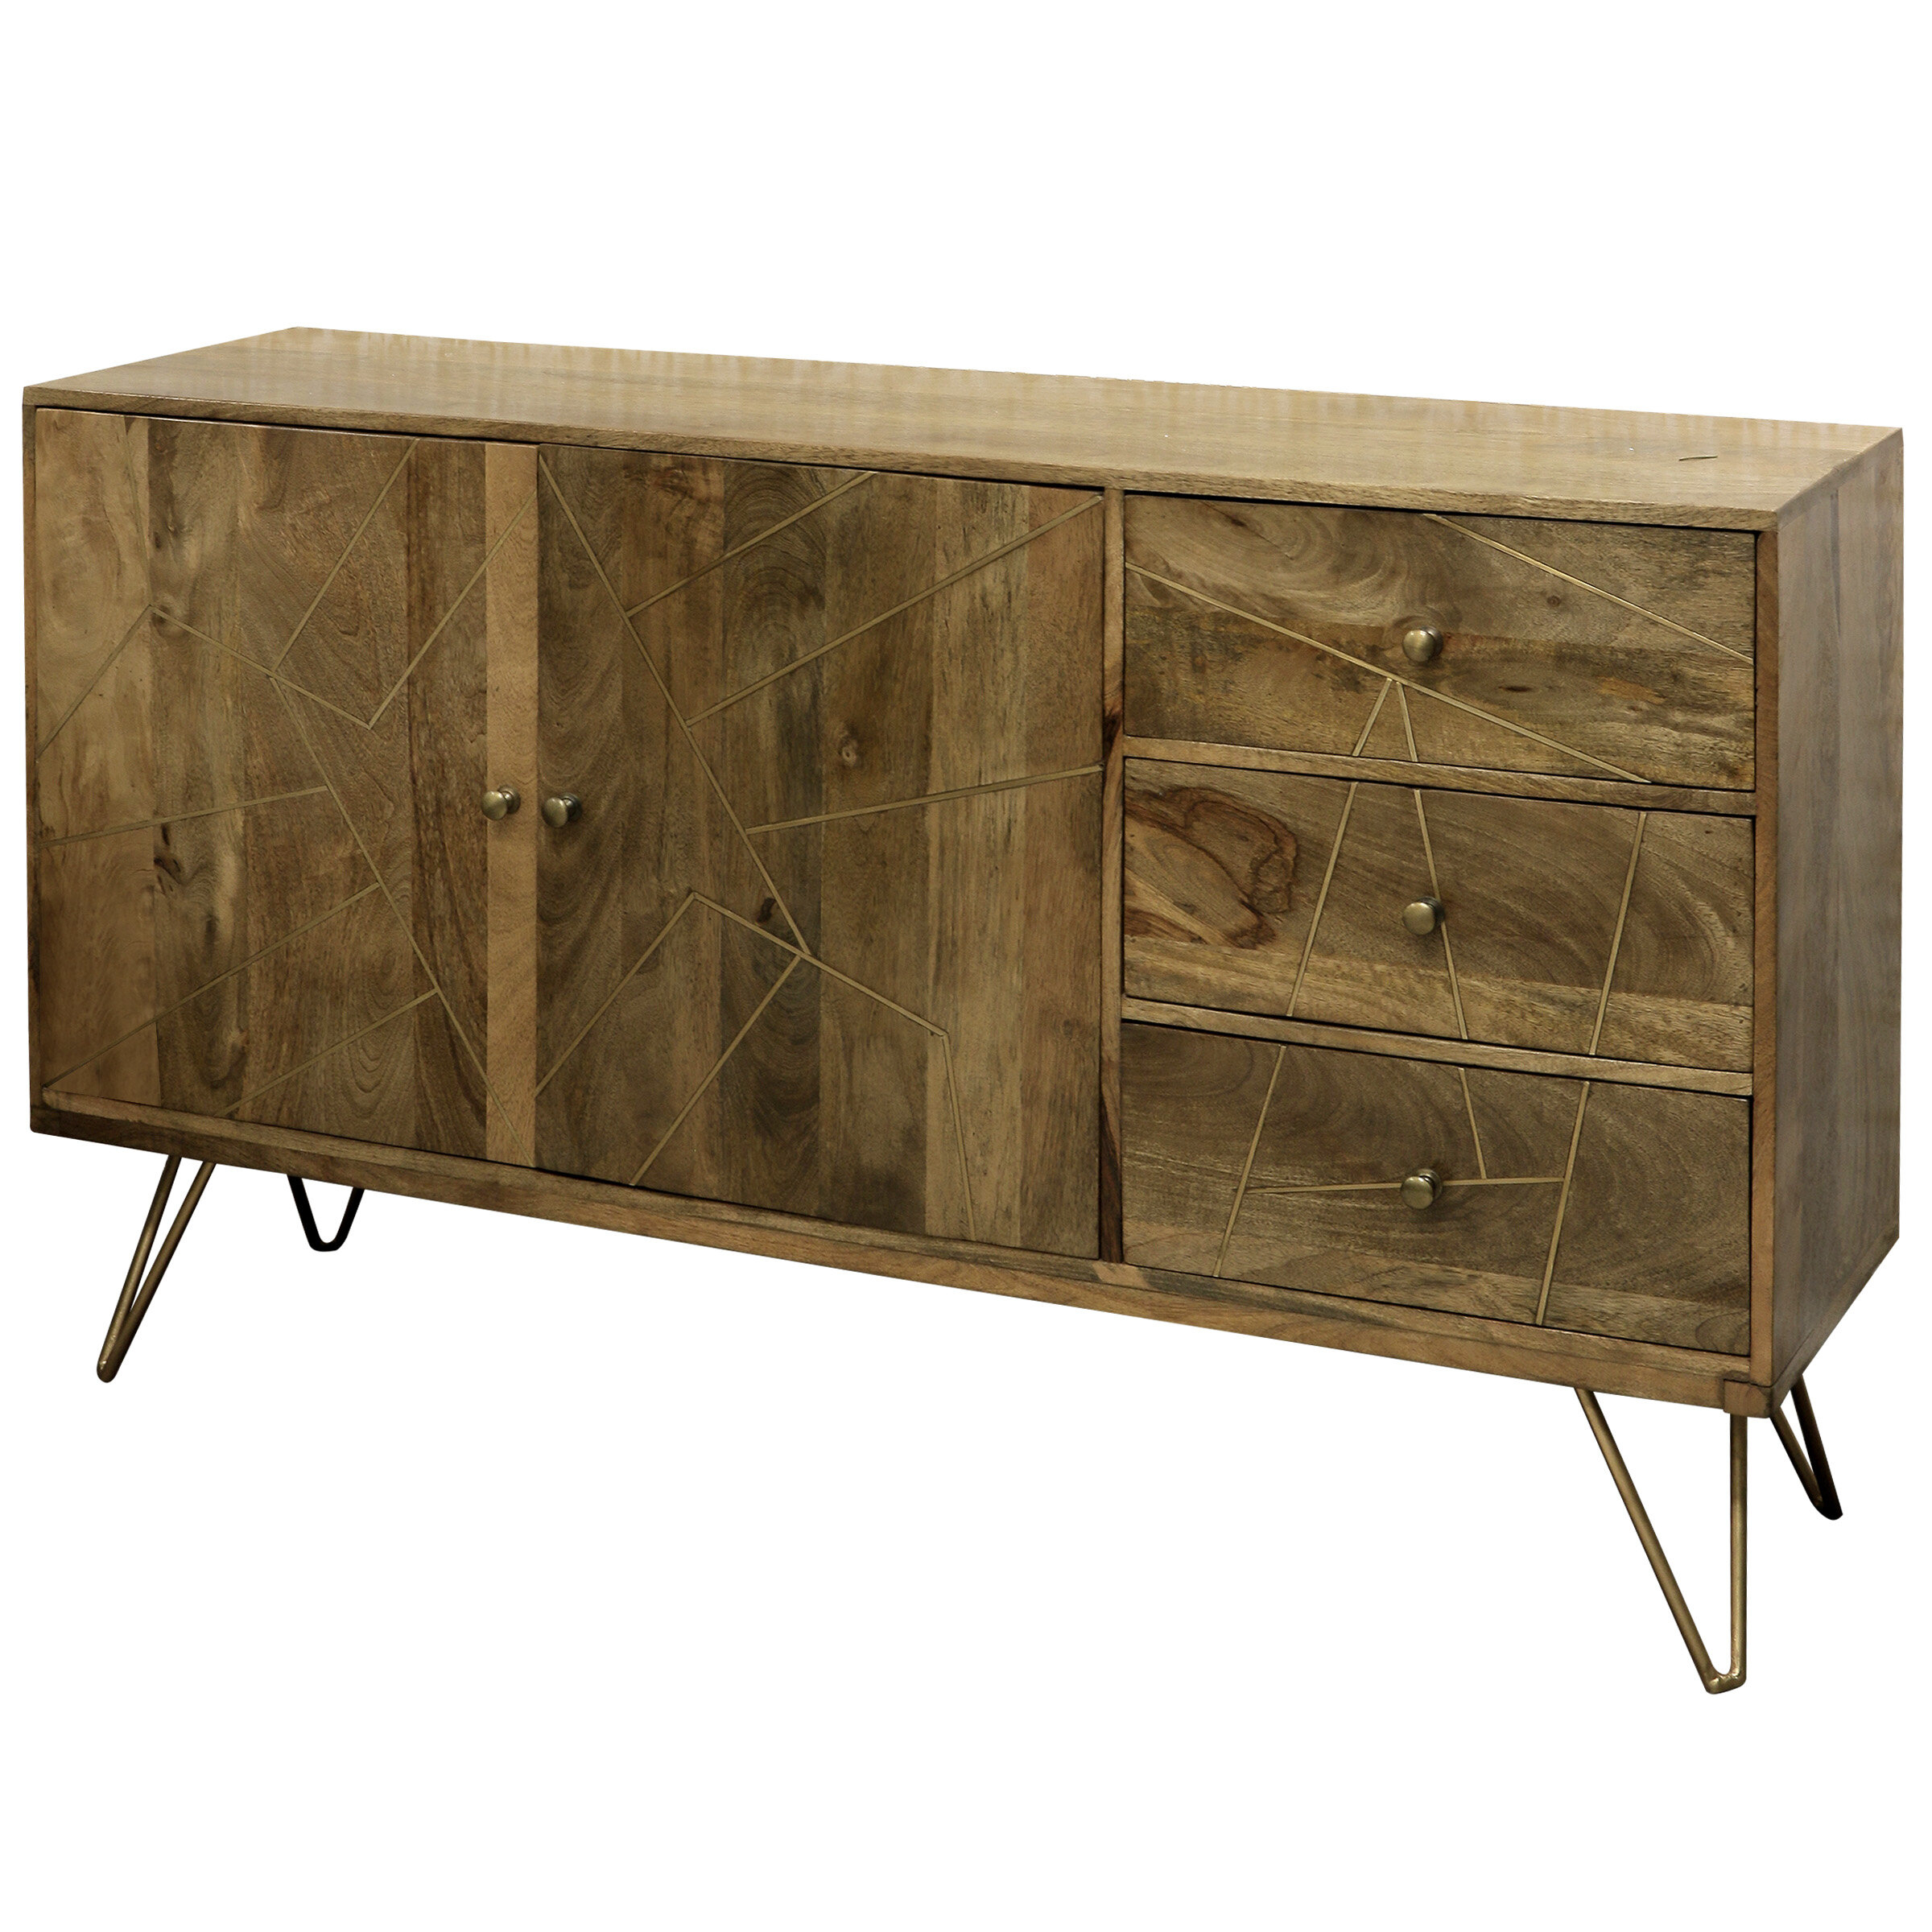 70 Inch Credenza You'll Love In 2019 | Wayfair Throughout Stephen Credenzas (View 2 of 30)